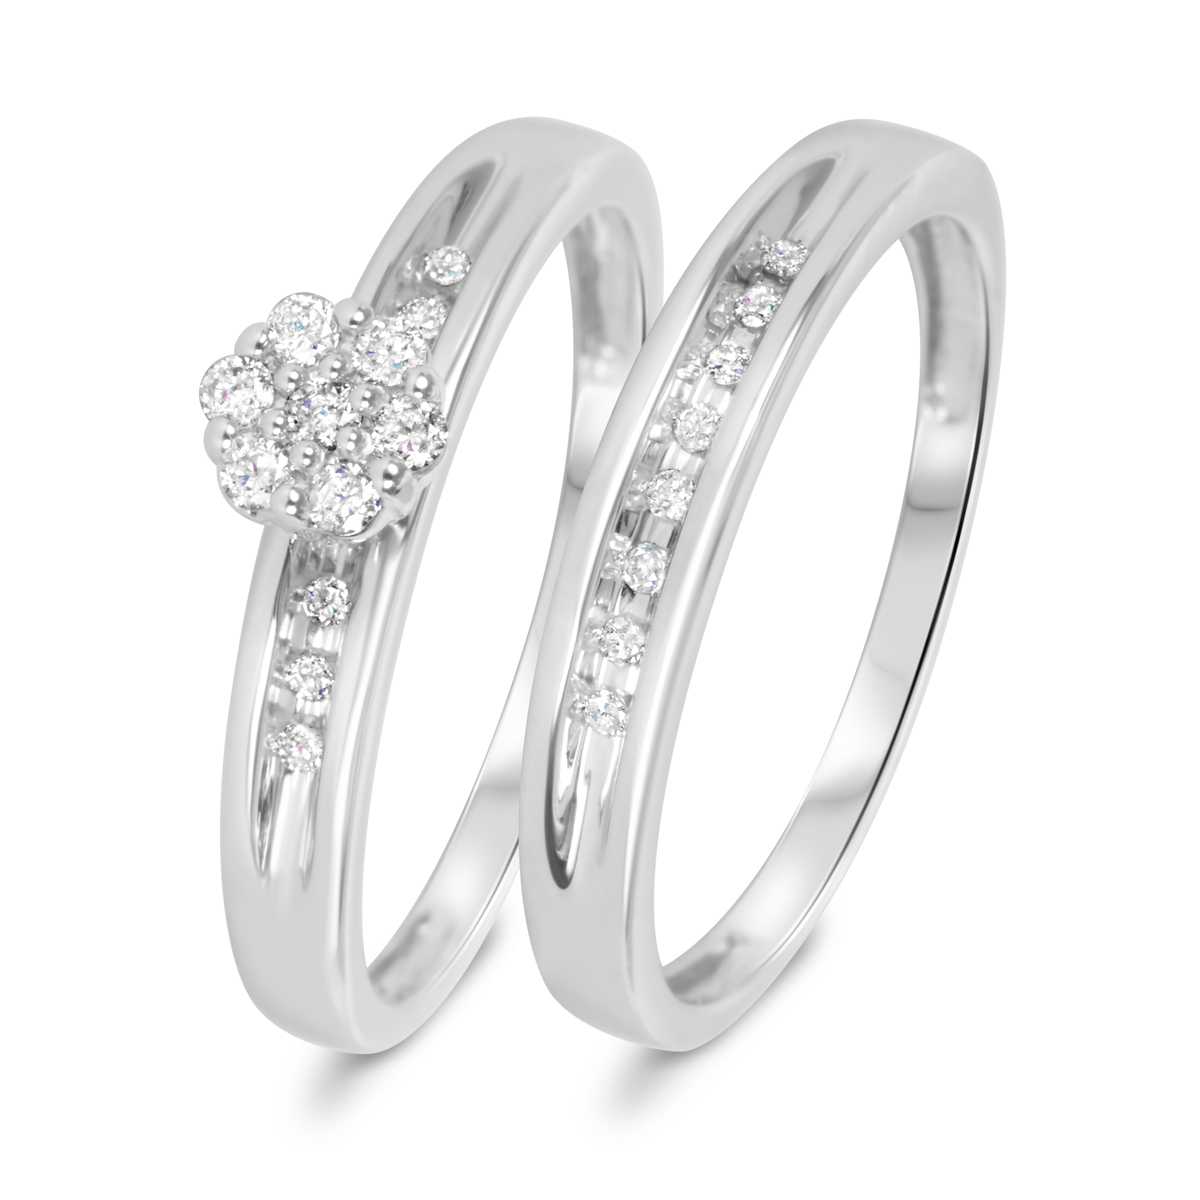 15 carat tw diamond womens bridal wedding ring set 10k white gold my trio rings br506w10k - Gold Wedding Ring Sets